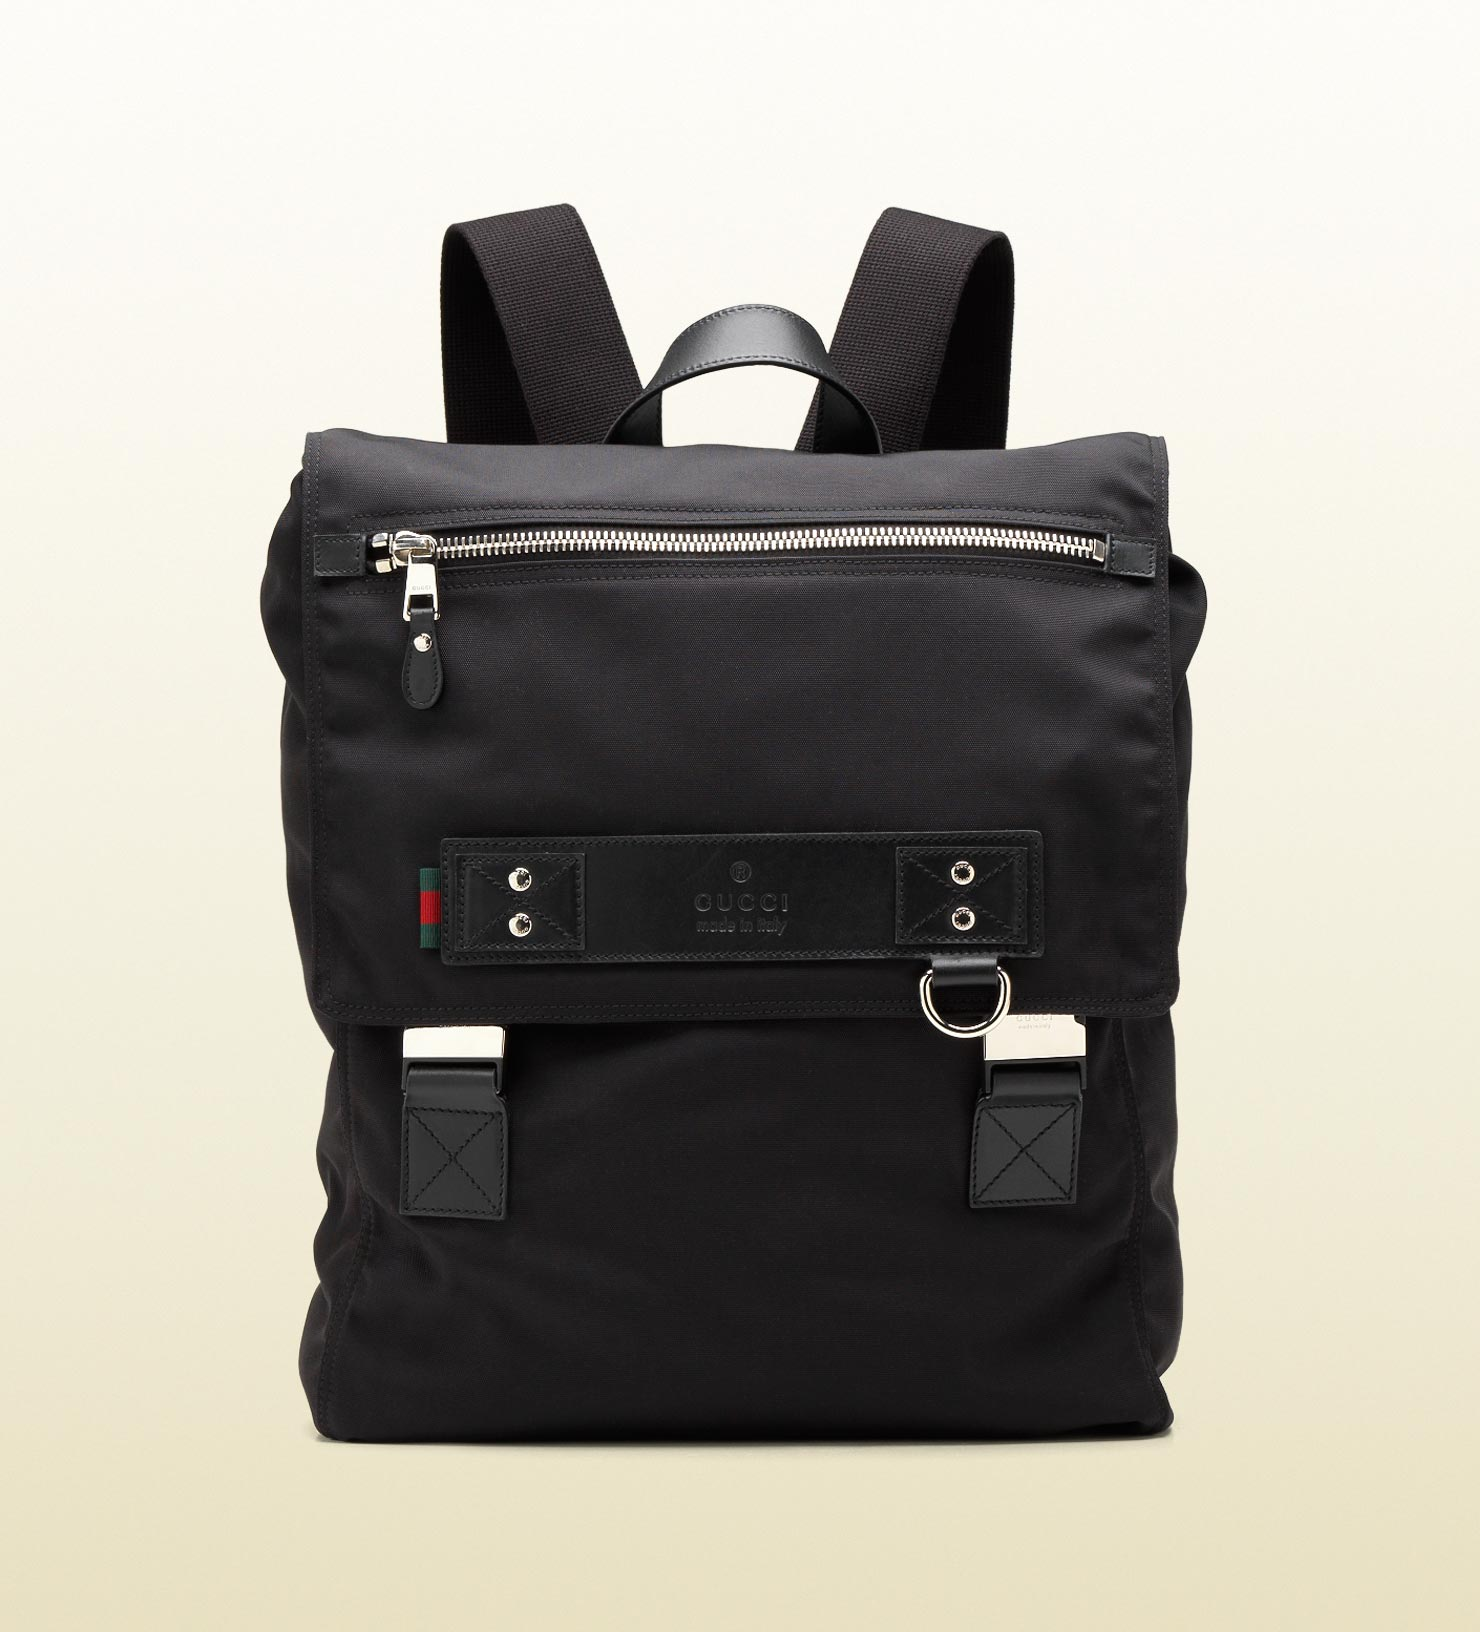 Gucci Backpack with Signature Web Loop in Black for Men - Lyst